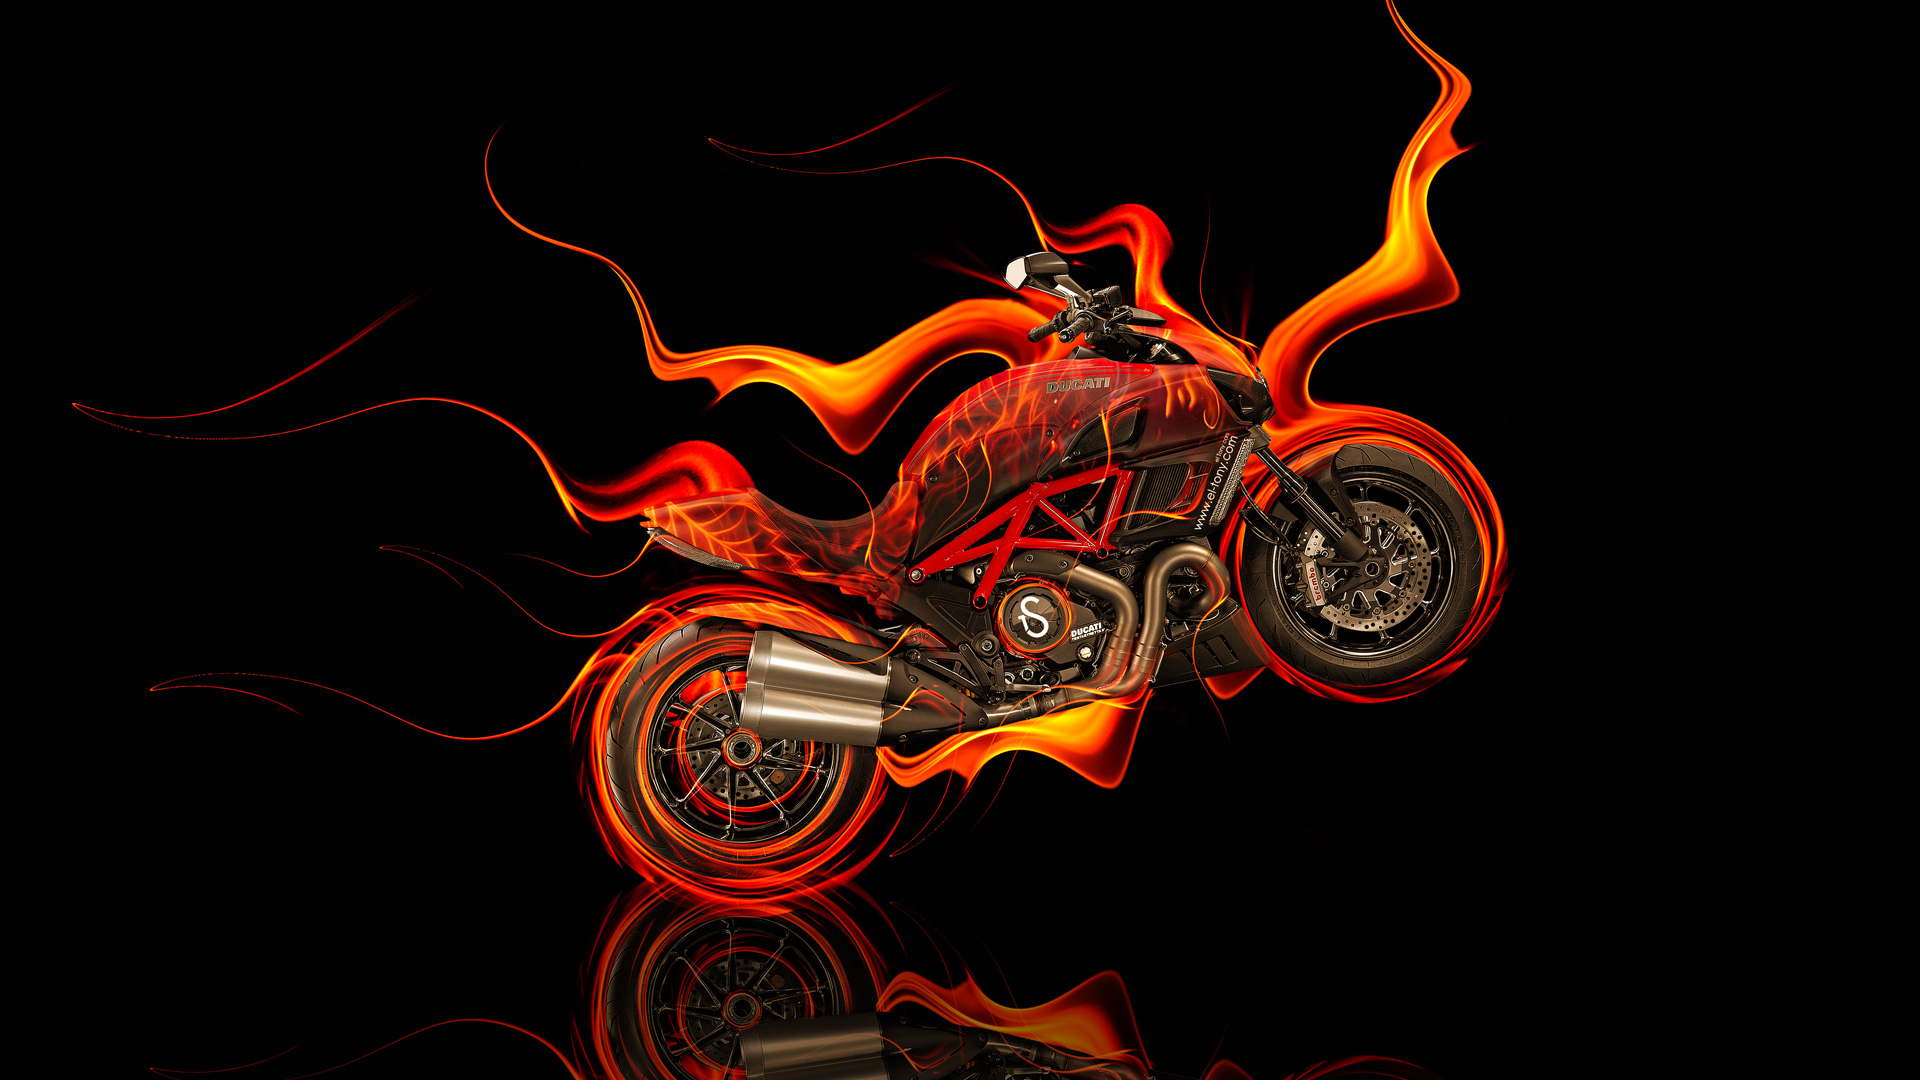 Moto Ducati Diavel Side Fire Abstract Bike 2014 HD Wallpapers Design ...